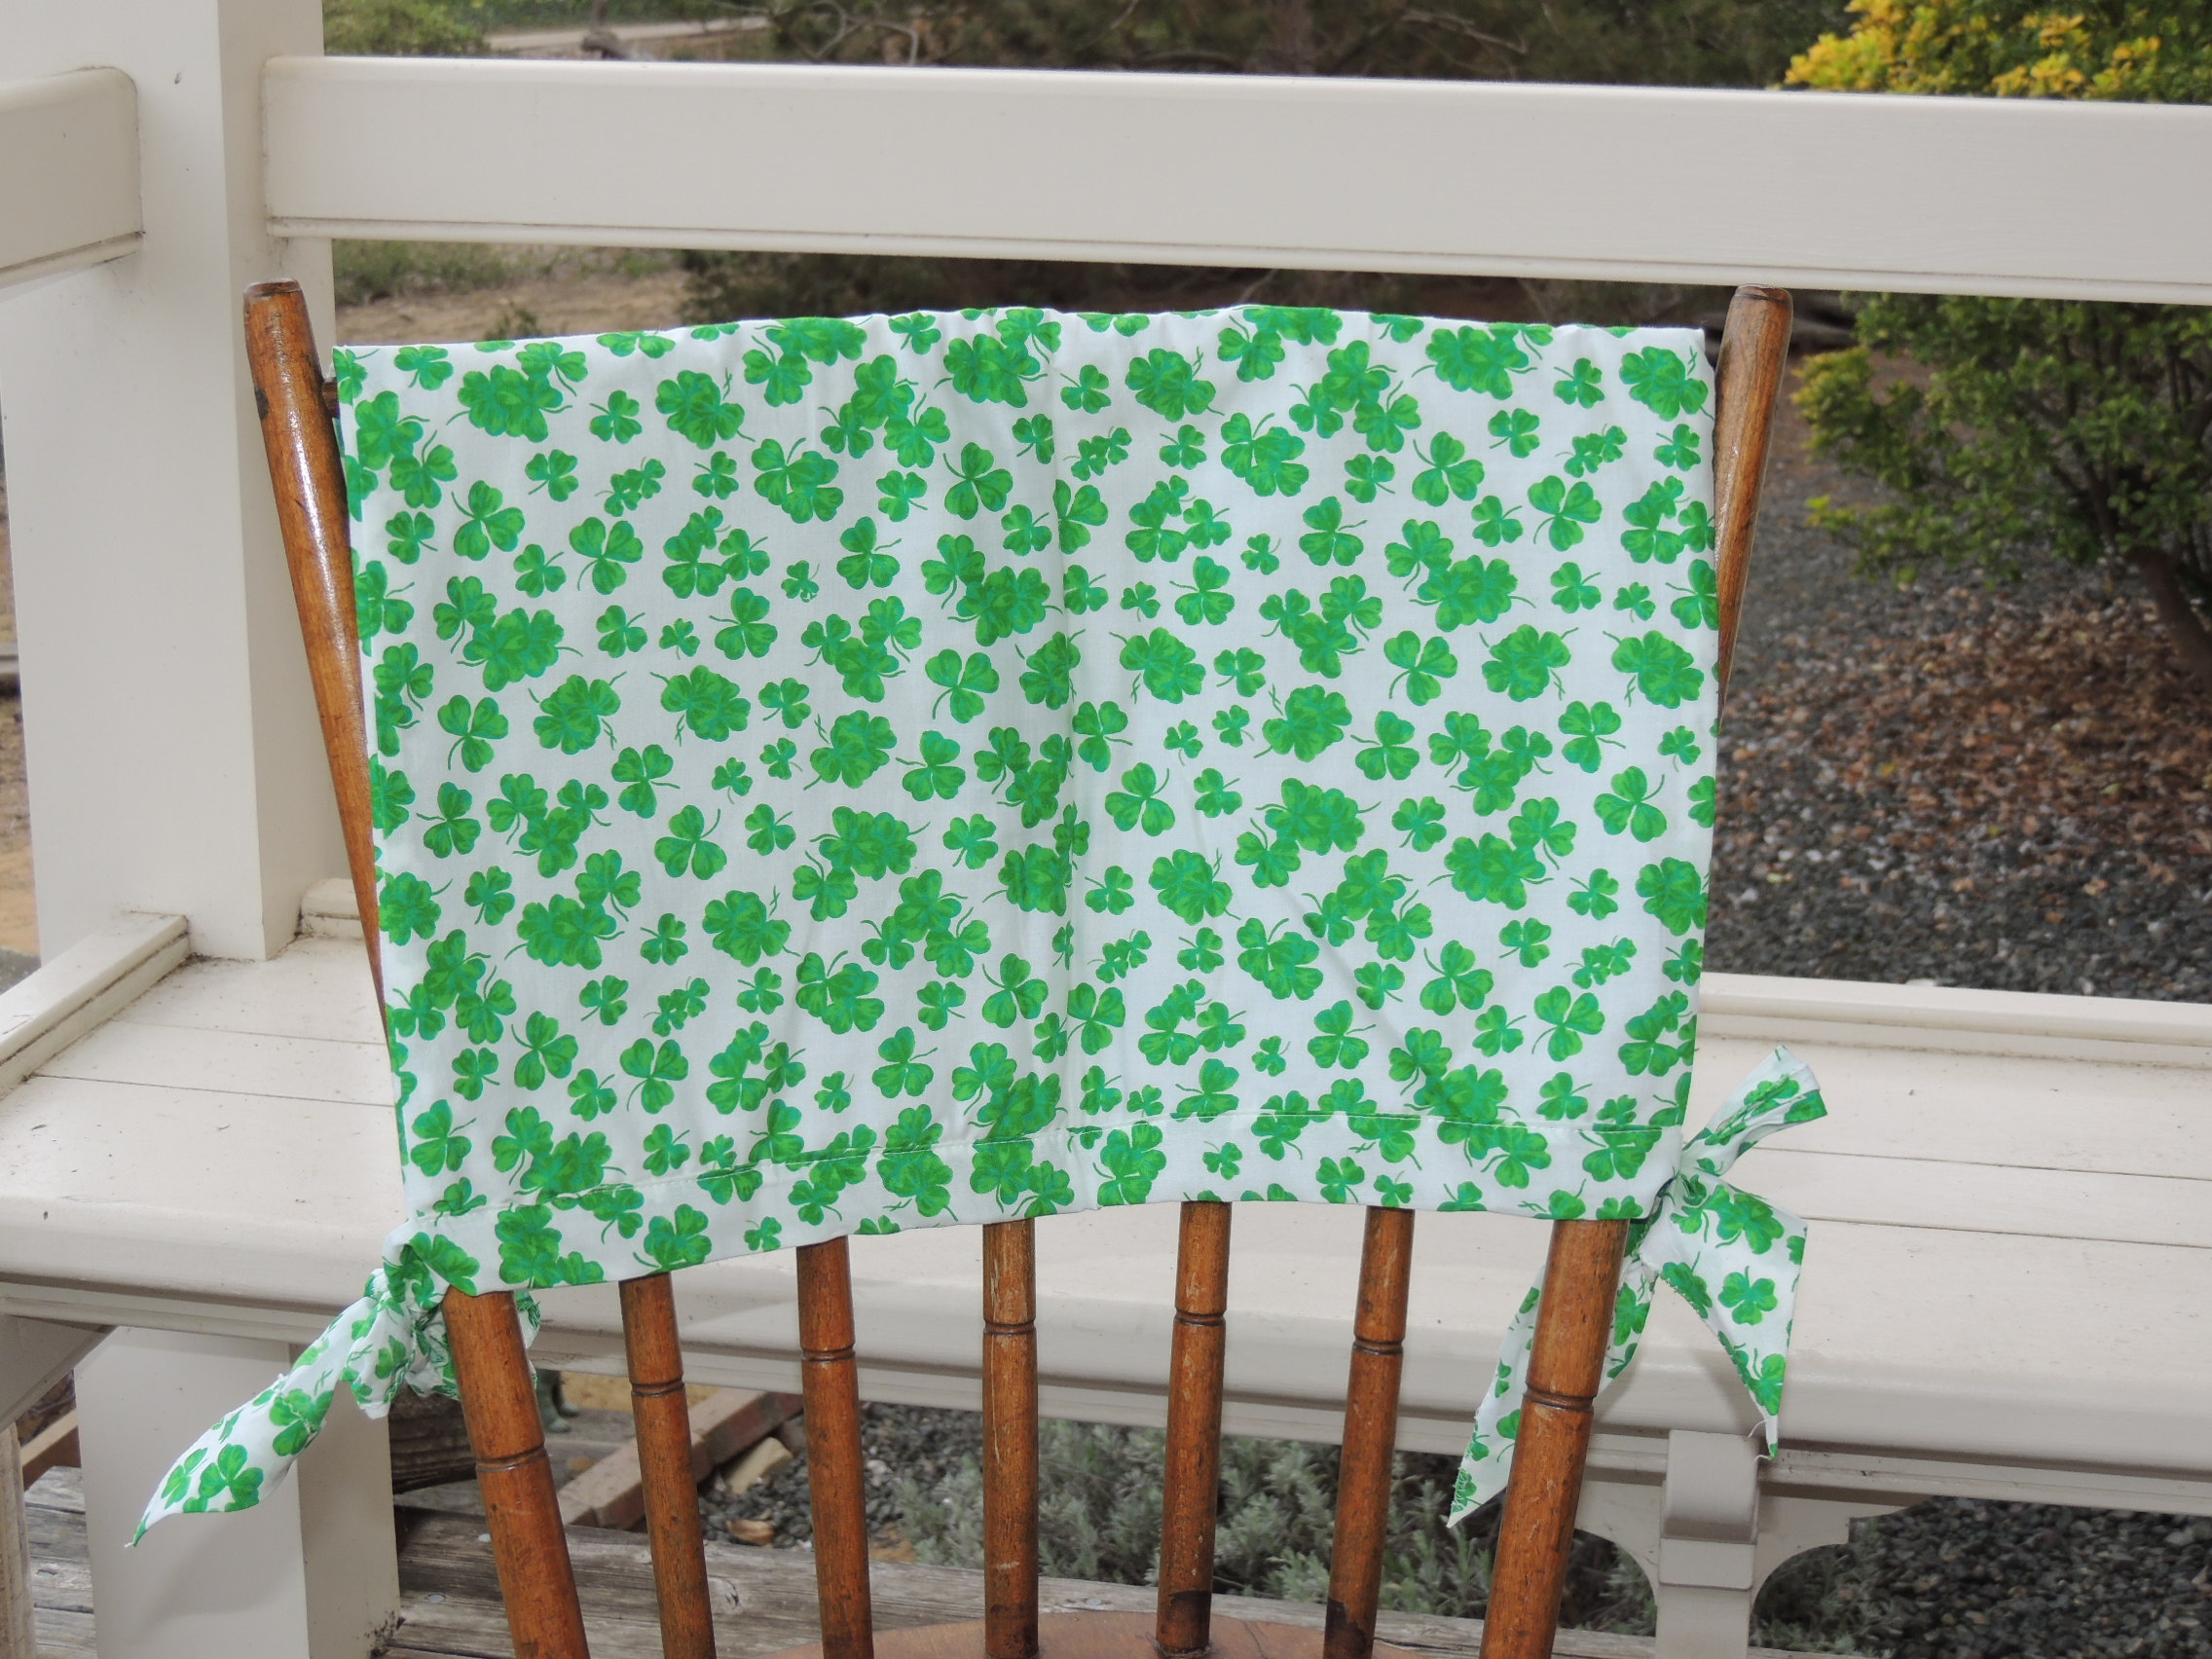 chair covers for sale ireland outdoor metal dining chairs shamrock patterned back cover  truly skrumptious